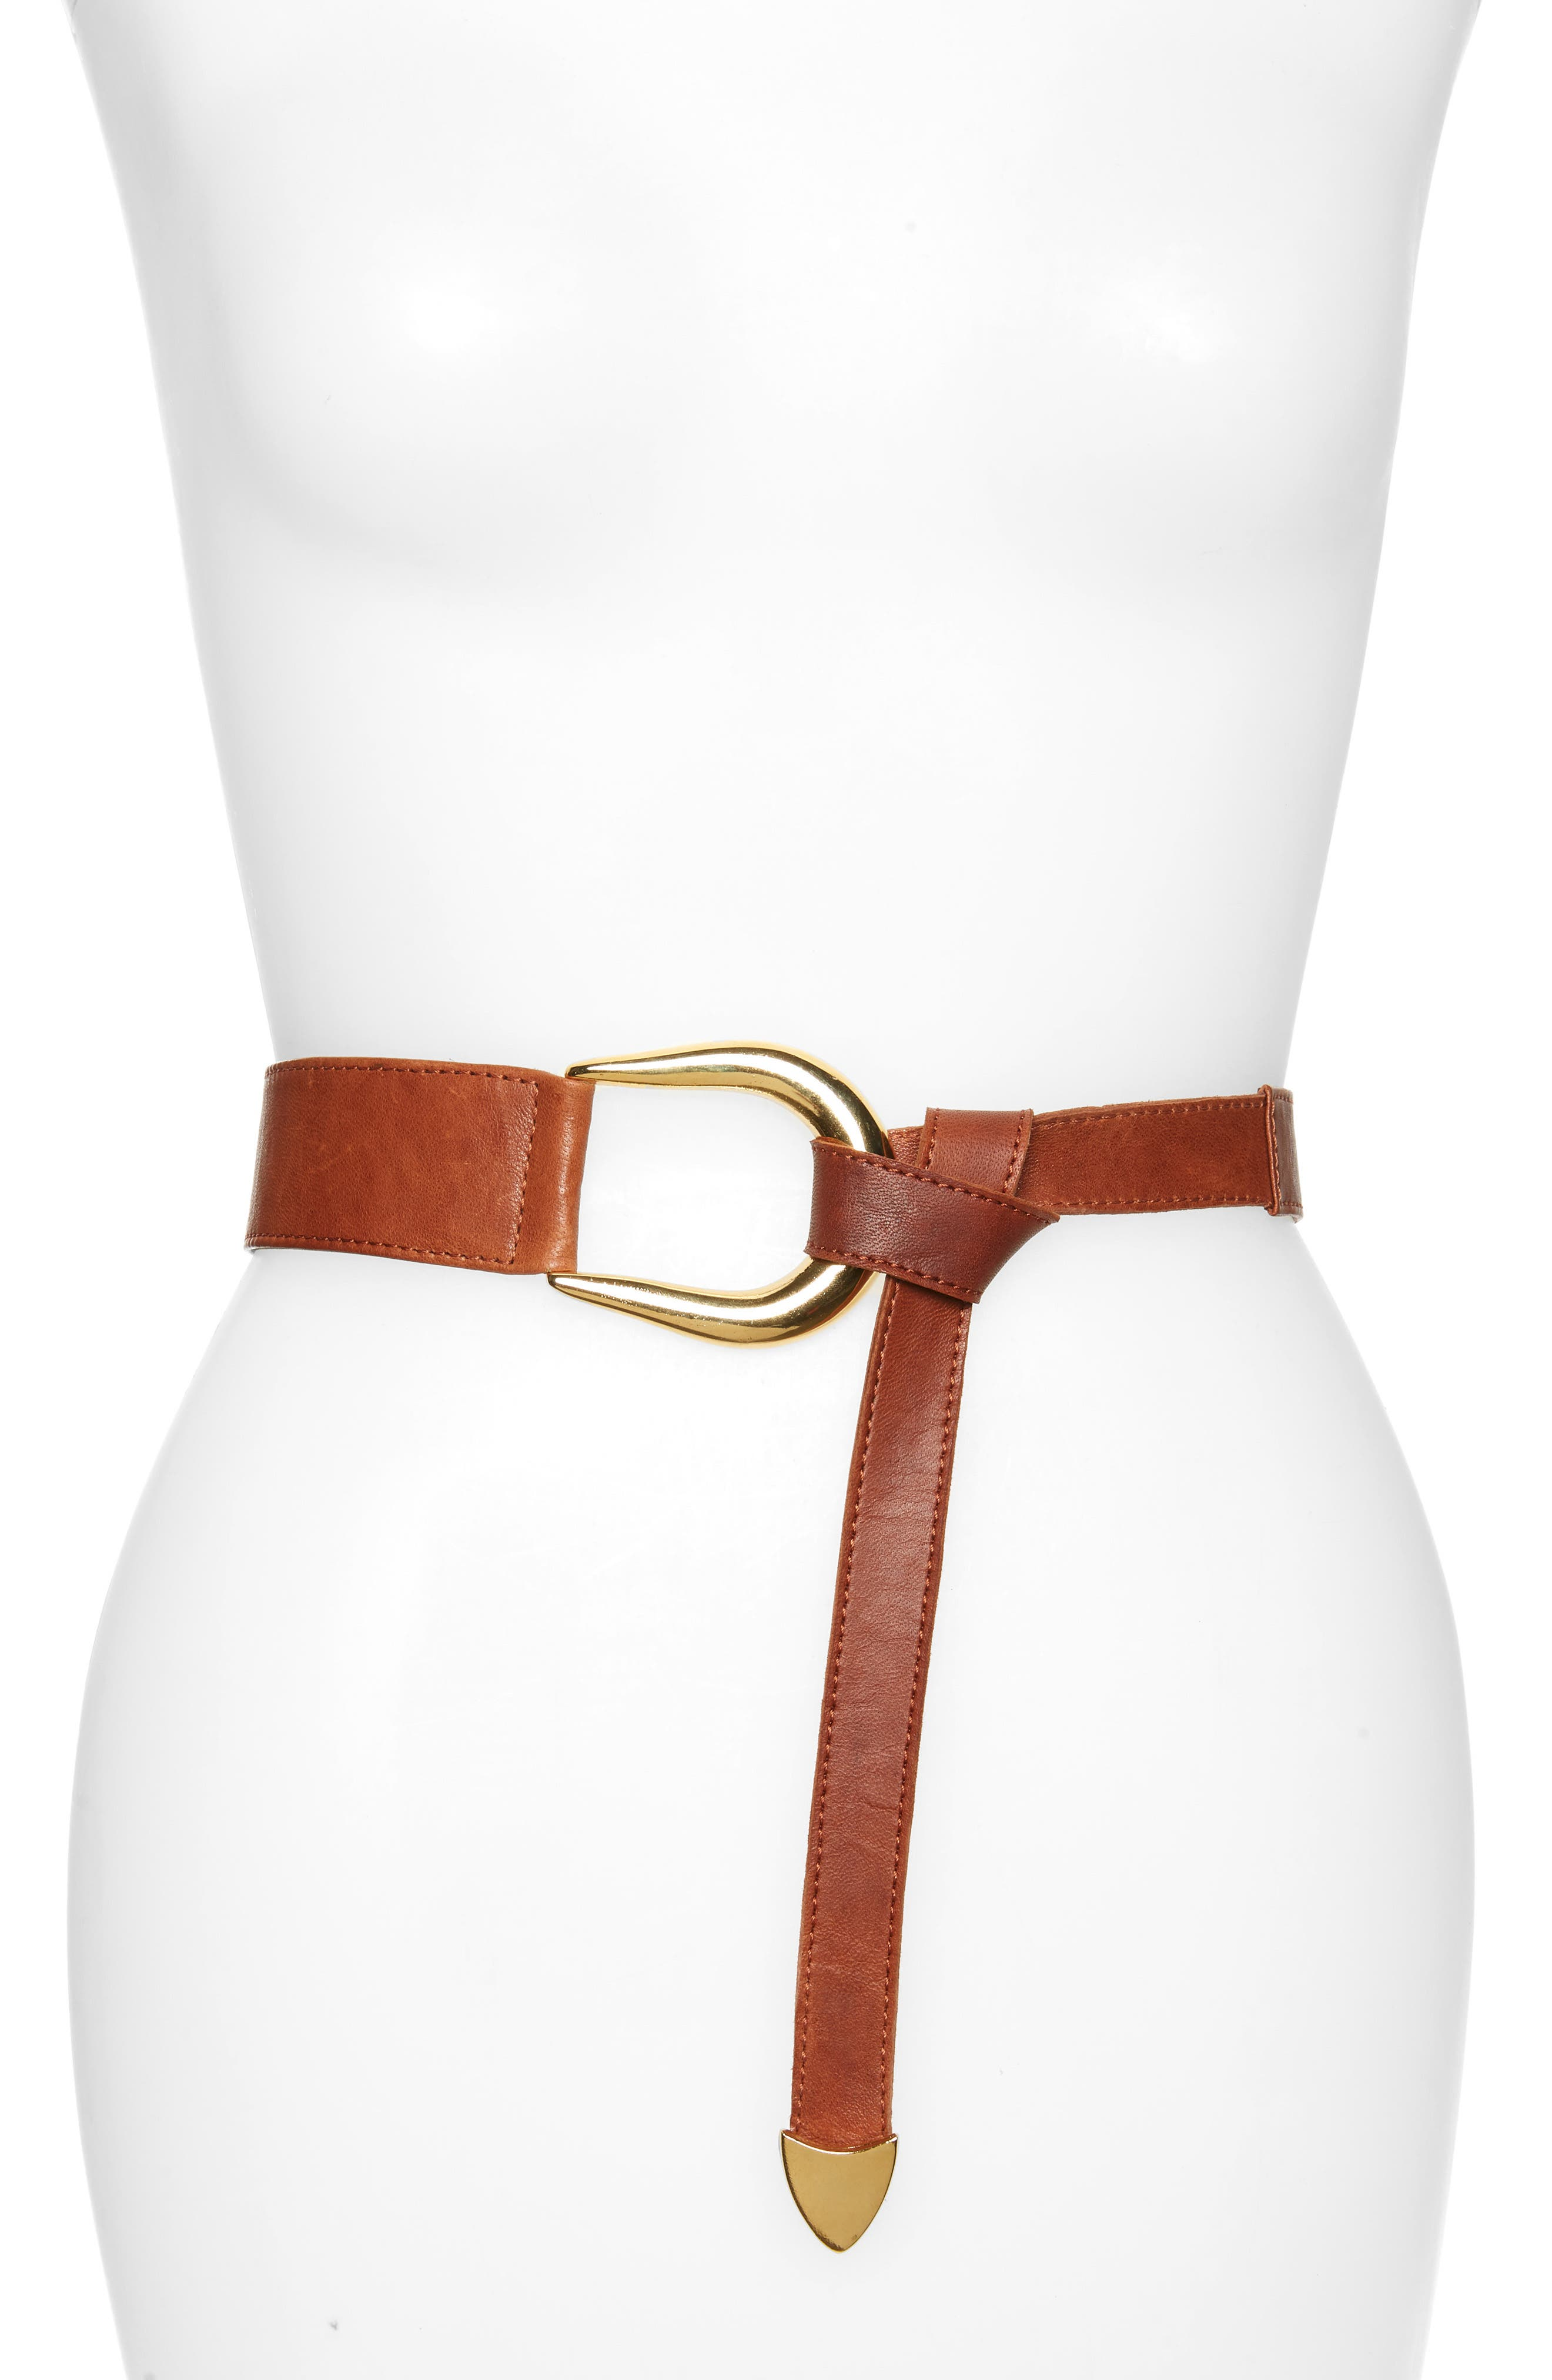 It\\\'s easy to find your perfect fit with a calfskin leather belt that you simply knot for a boho-chic look. Style Name: Raina Sheila Knot Belt. Style Number: 6014875. Available in stores.